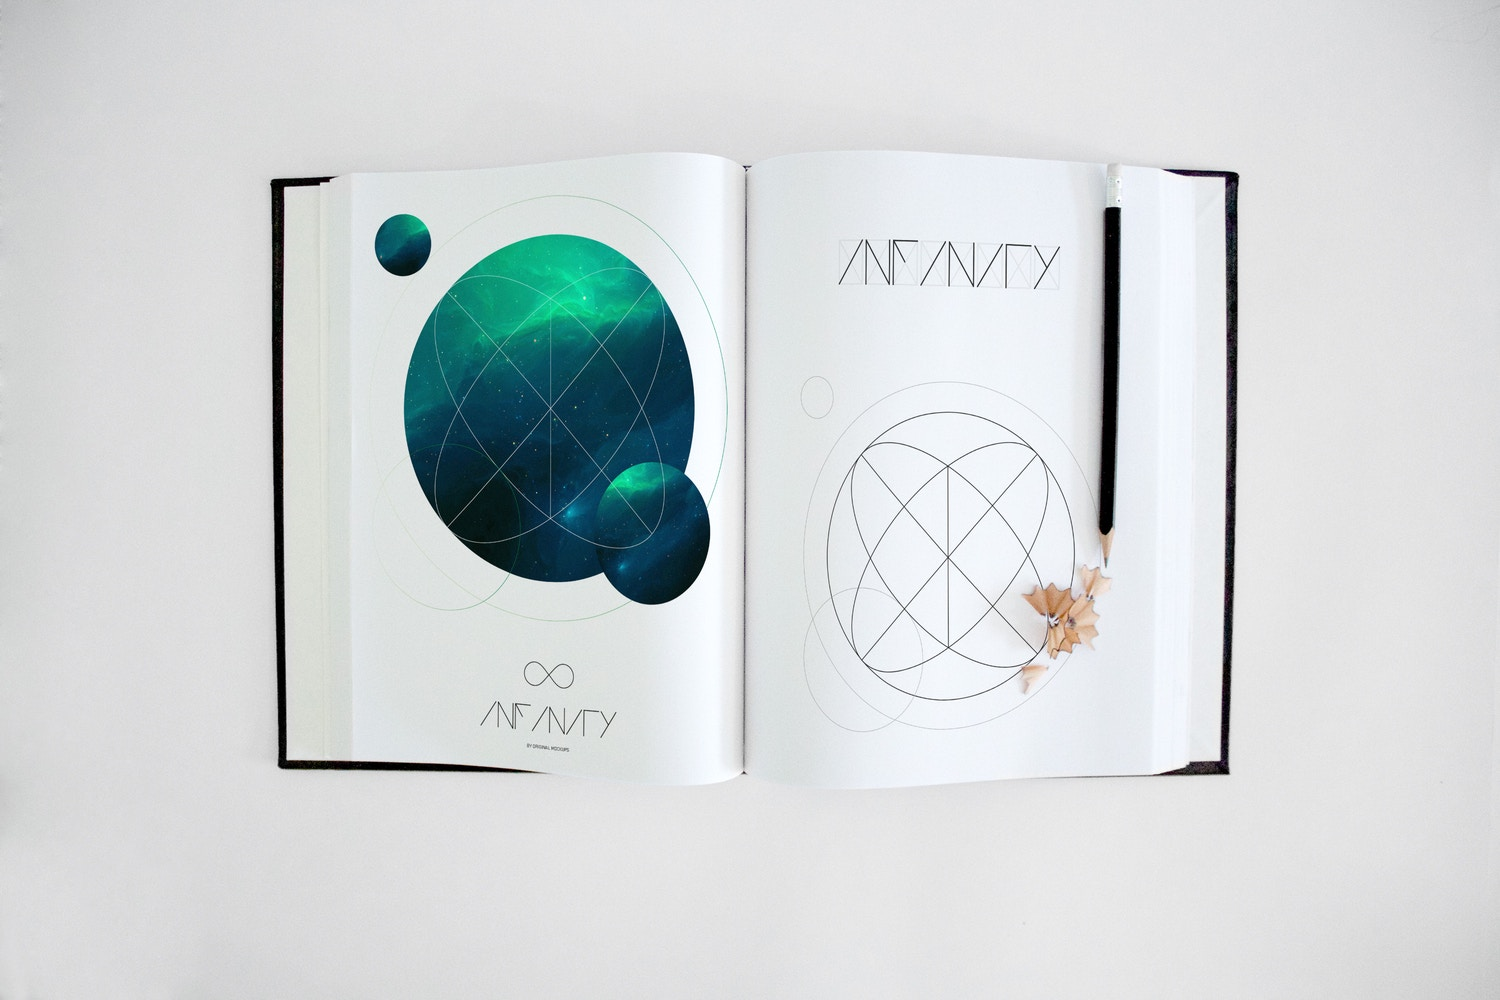 Art Book Mockup 4 by Original Mockups on Original Mockups